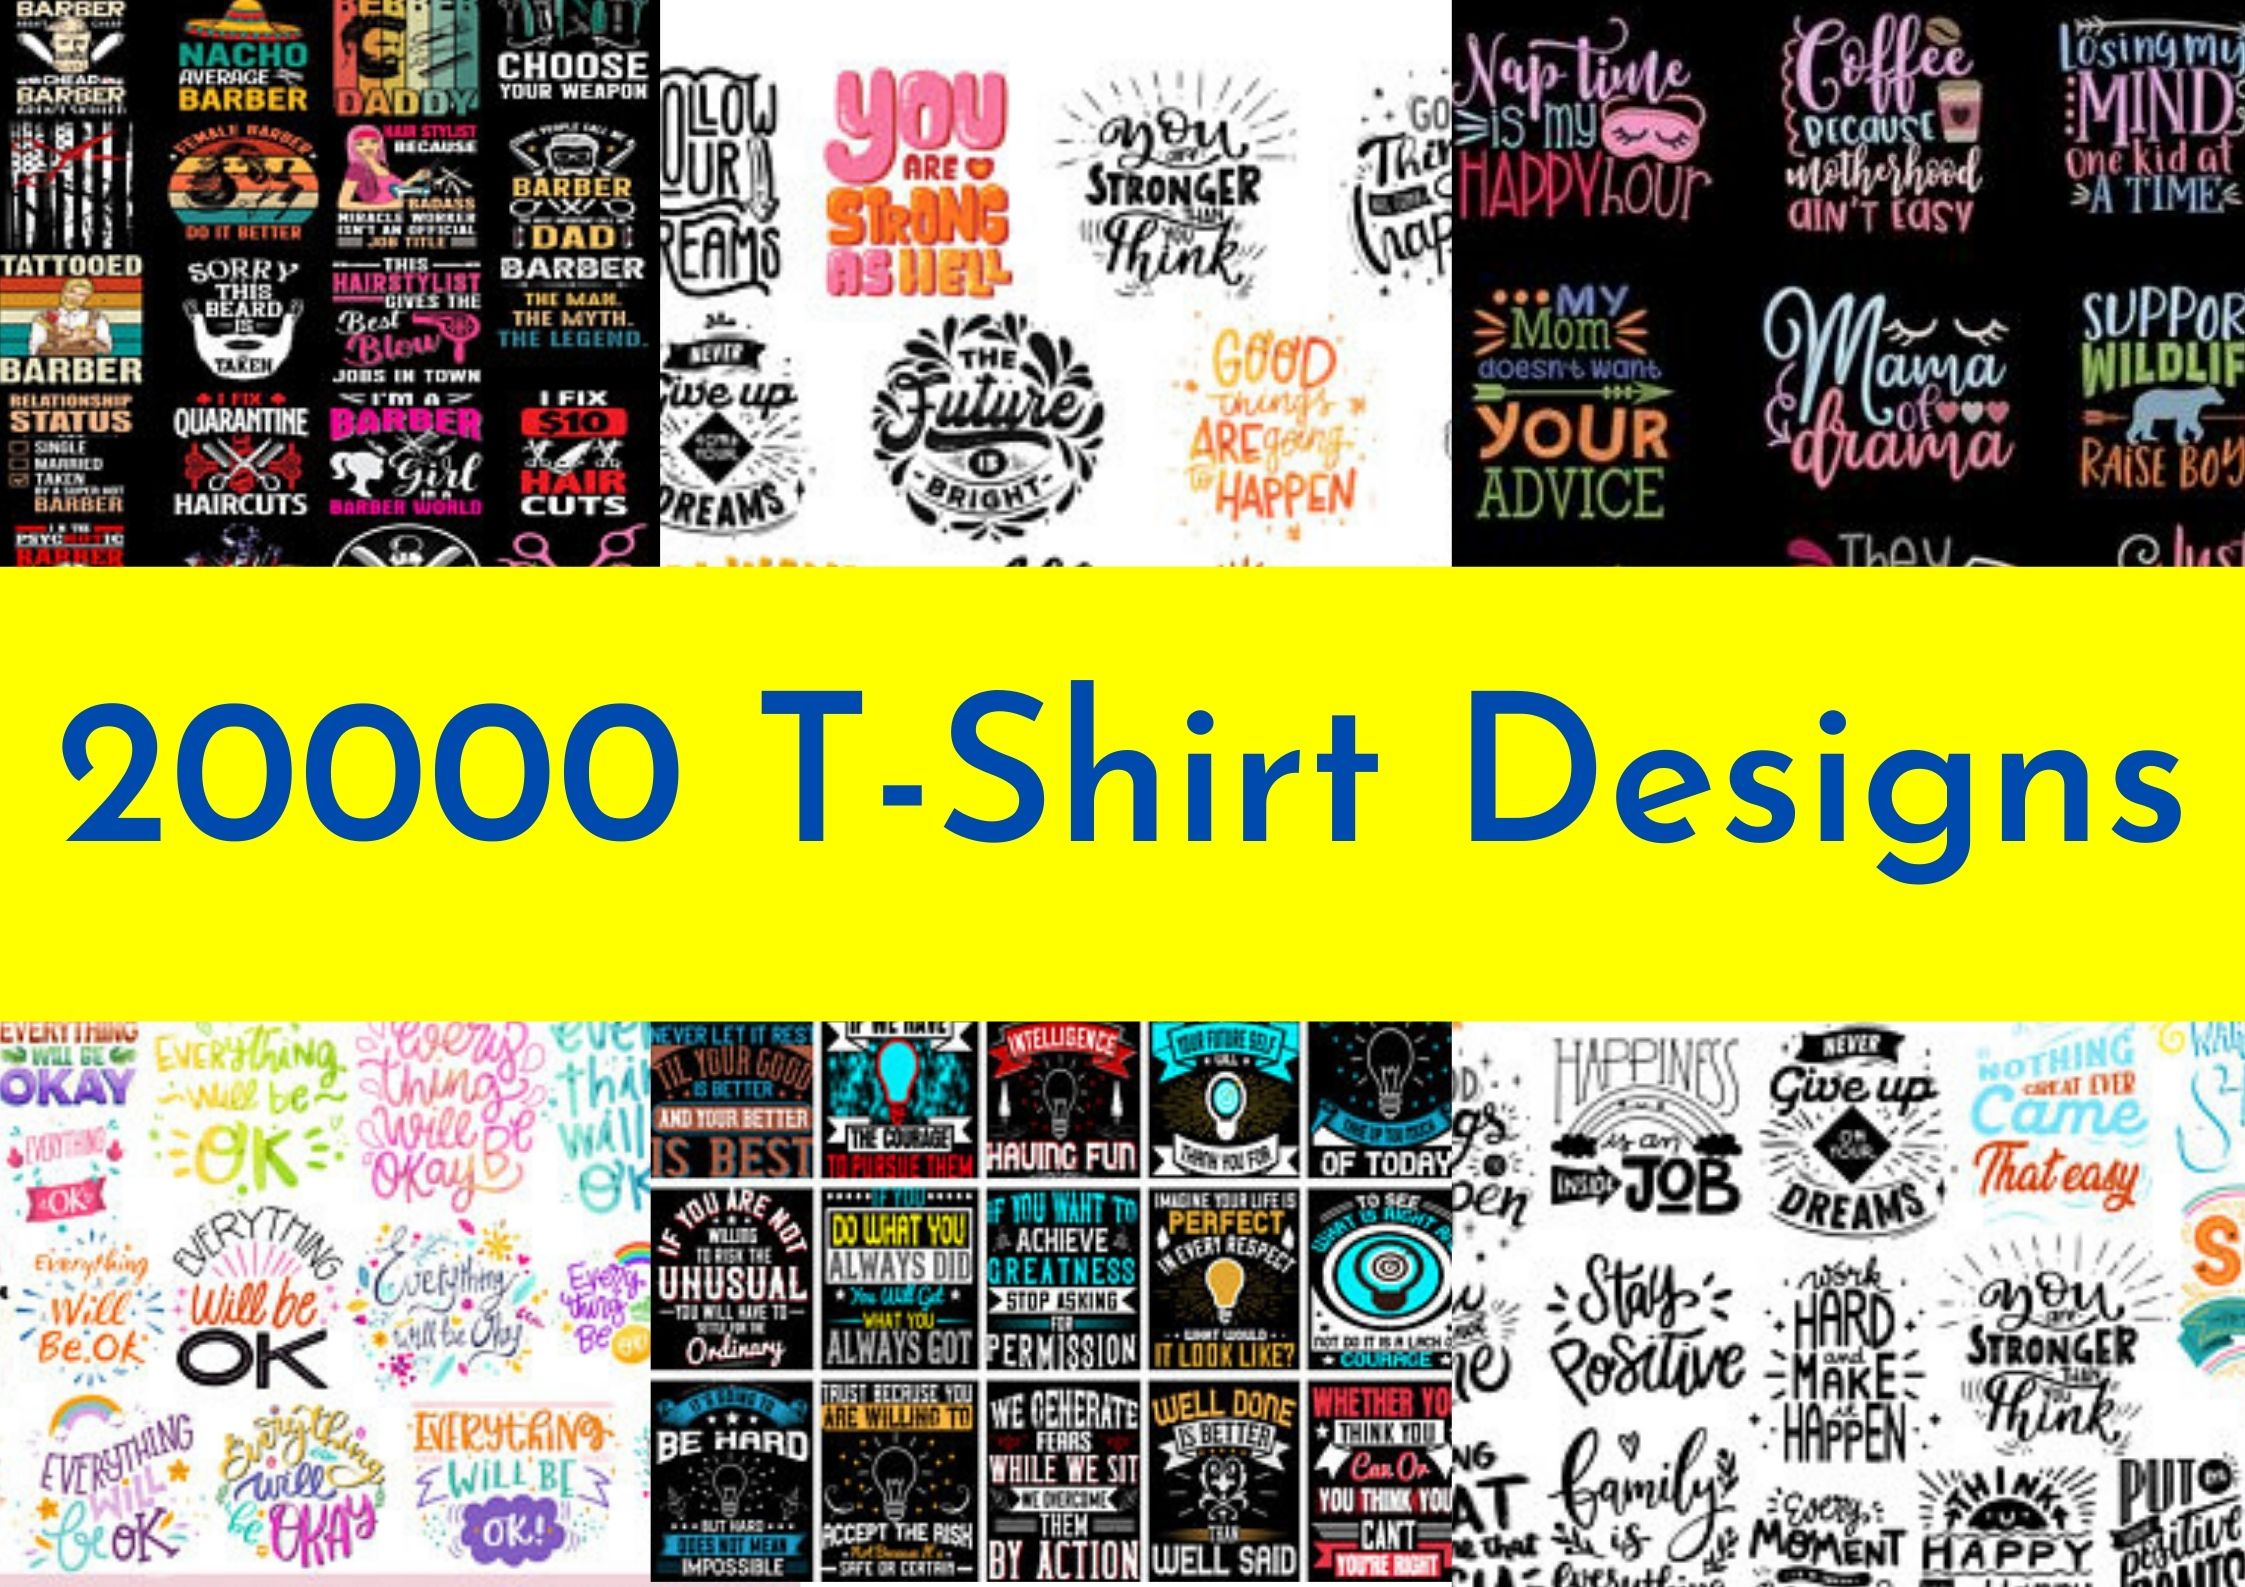 I will give you 20000 t shirt designs for print on demand business